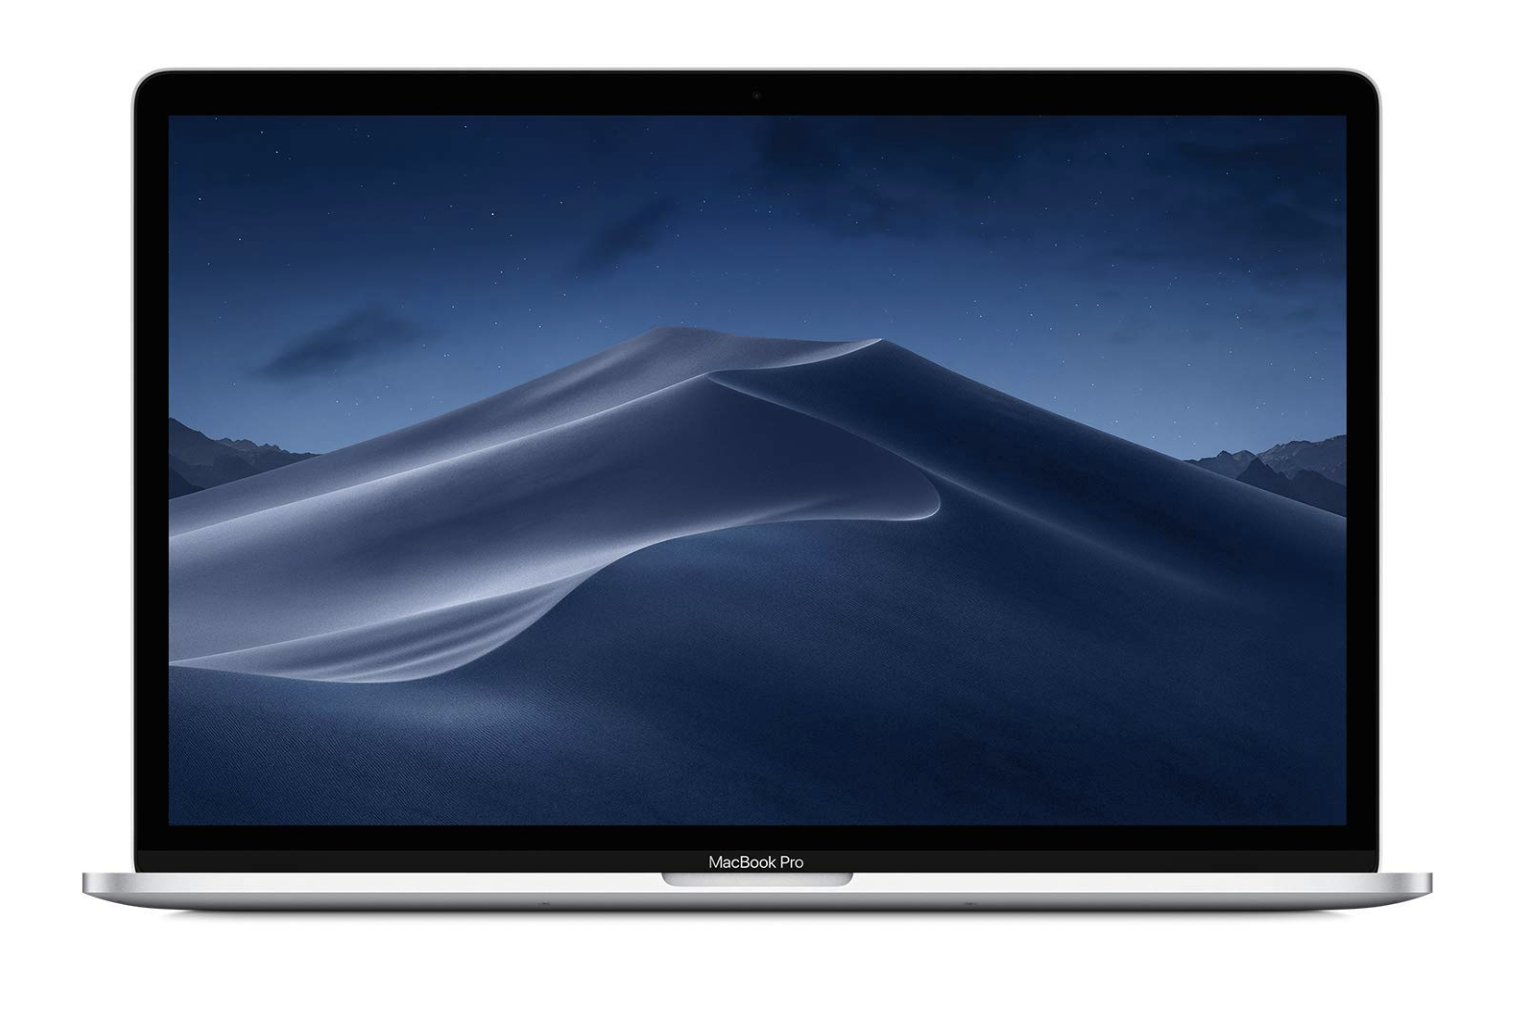 New Apple MacBook Pro (15-inch, 16GB RAM, 512GB Storage)